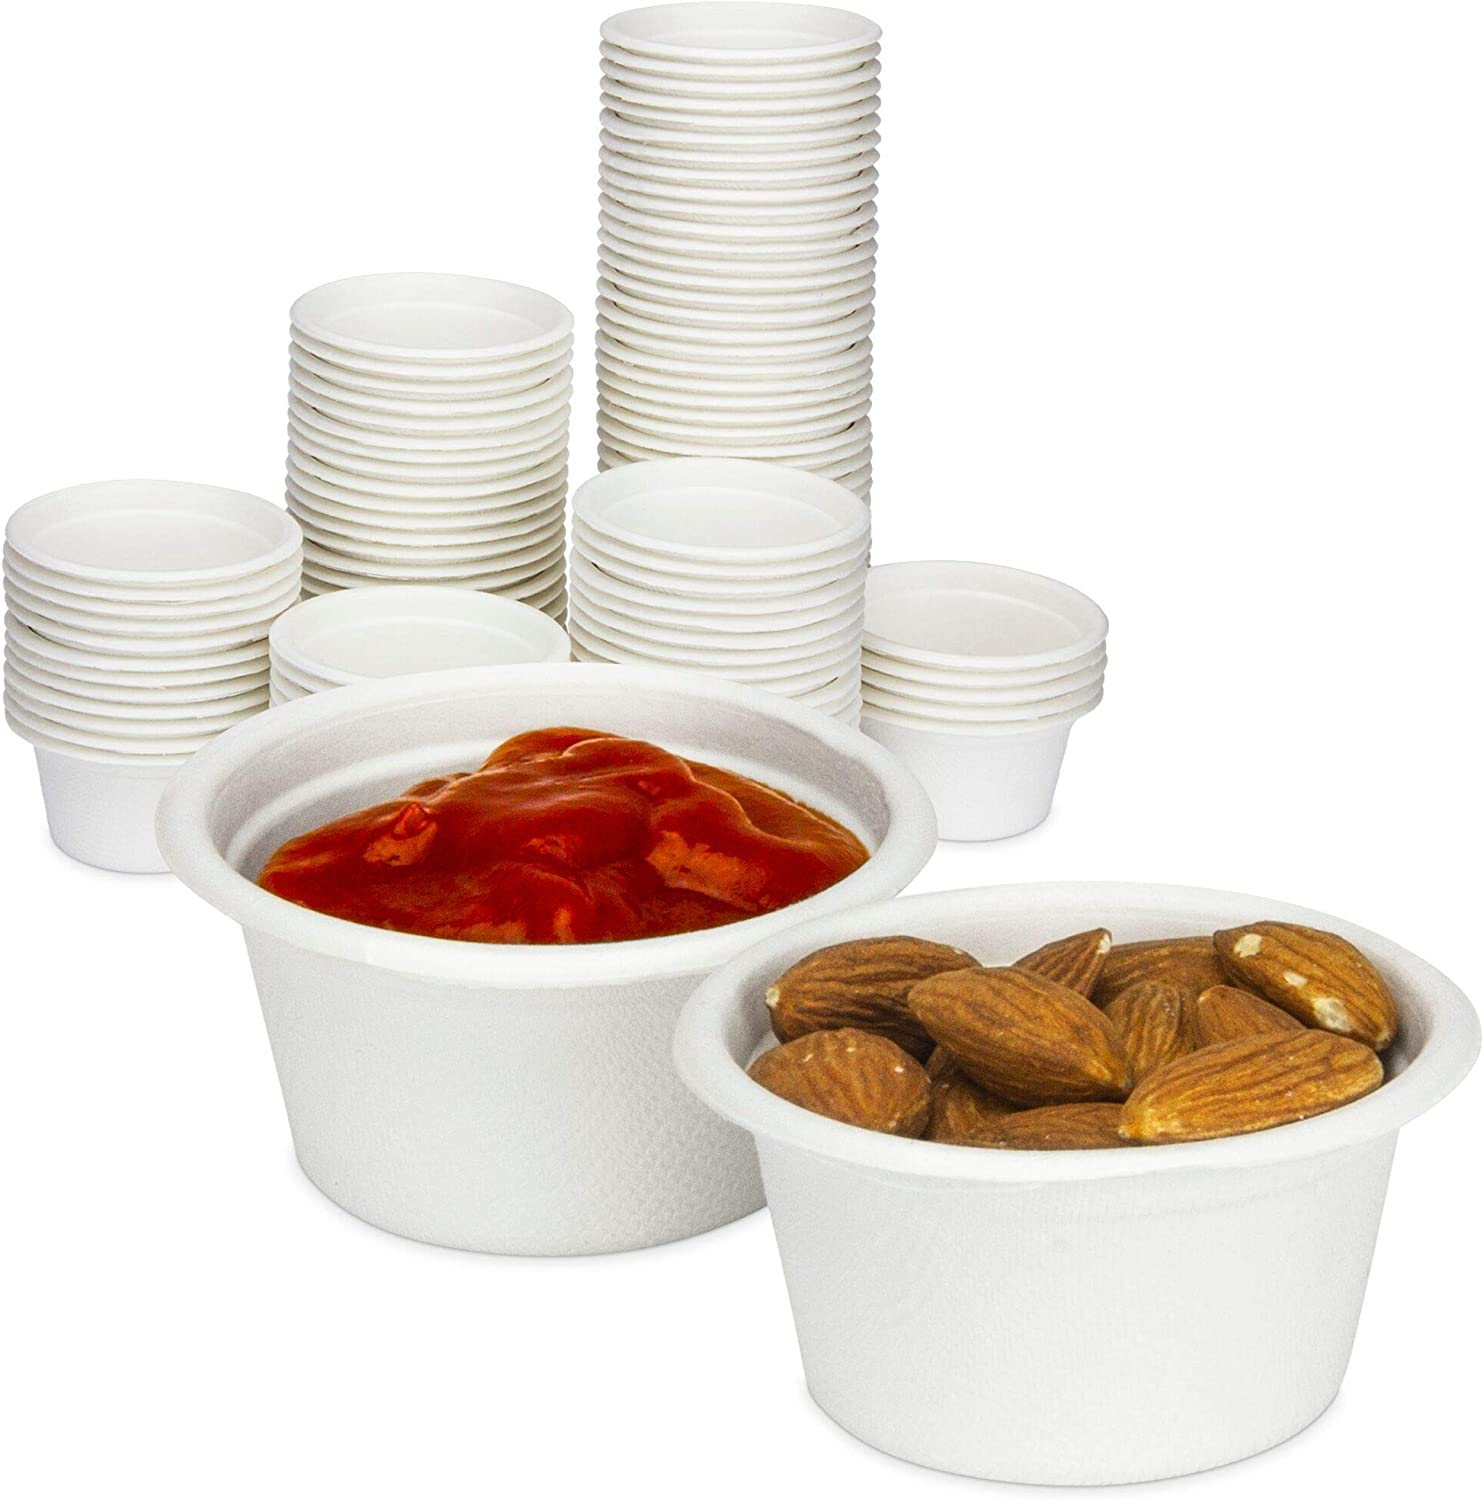 [100 Pack] 2 Oz White Compostable Disposable Cup - 100% Biodegradable Sugarcane/Bagasse, Paper and Plastic Cup Alternative, Eco Friendly Hot or Cold Food and Condiments Containers, Microwave Safe